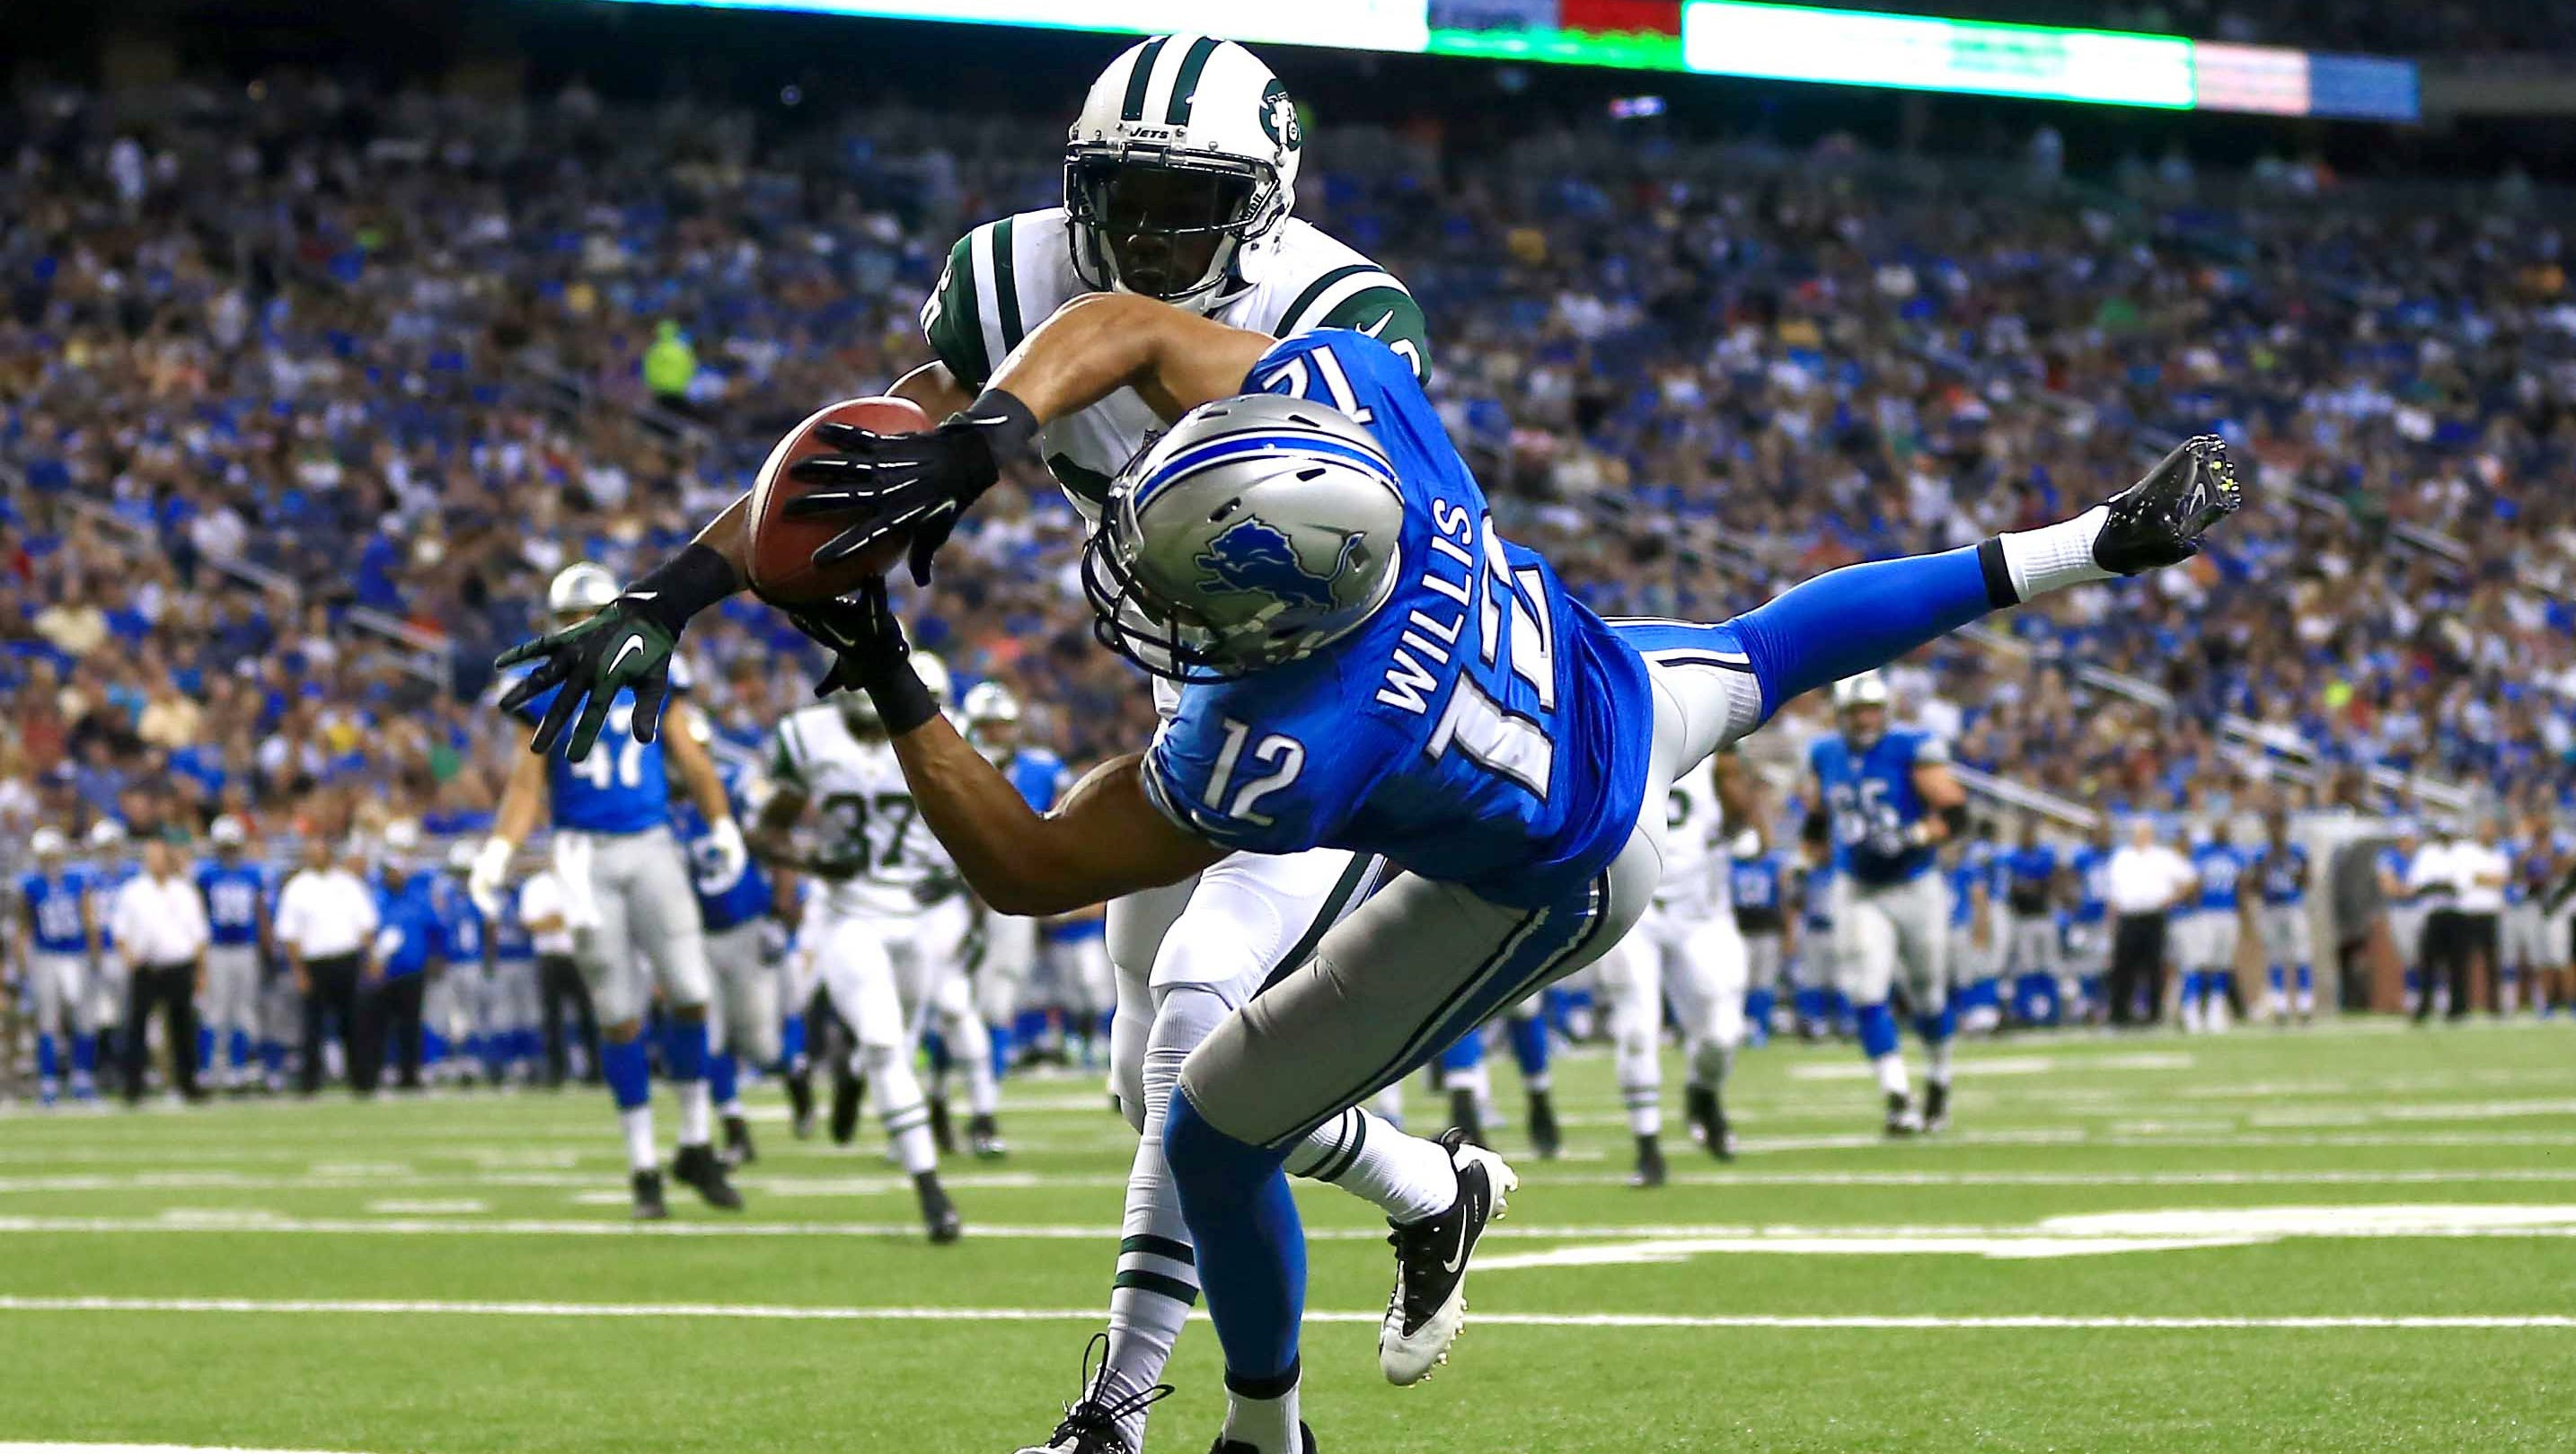 Detroit Lions wide receiver Matt Willis (12) catches a pass in the end zone for a touchdown while being defended by New York Jets running back Chad Spann (30) in the second quarter of a preseason game at Ford Field.